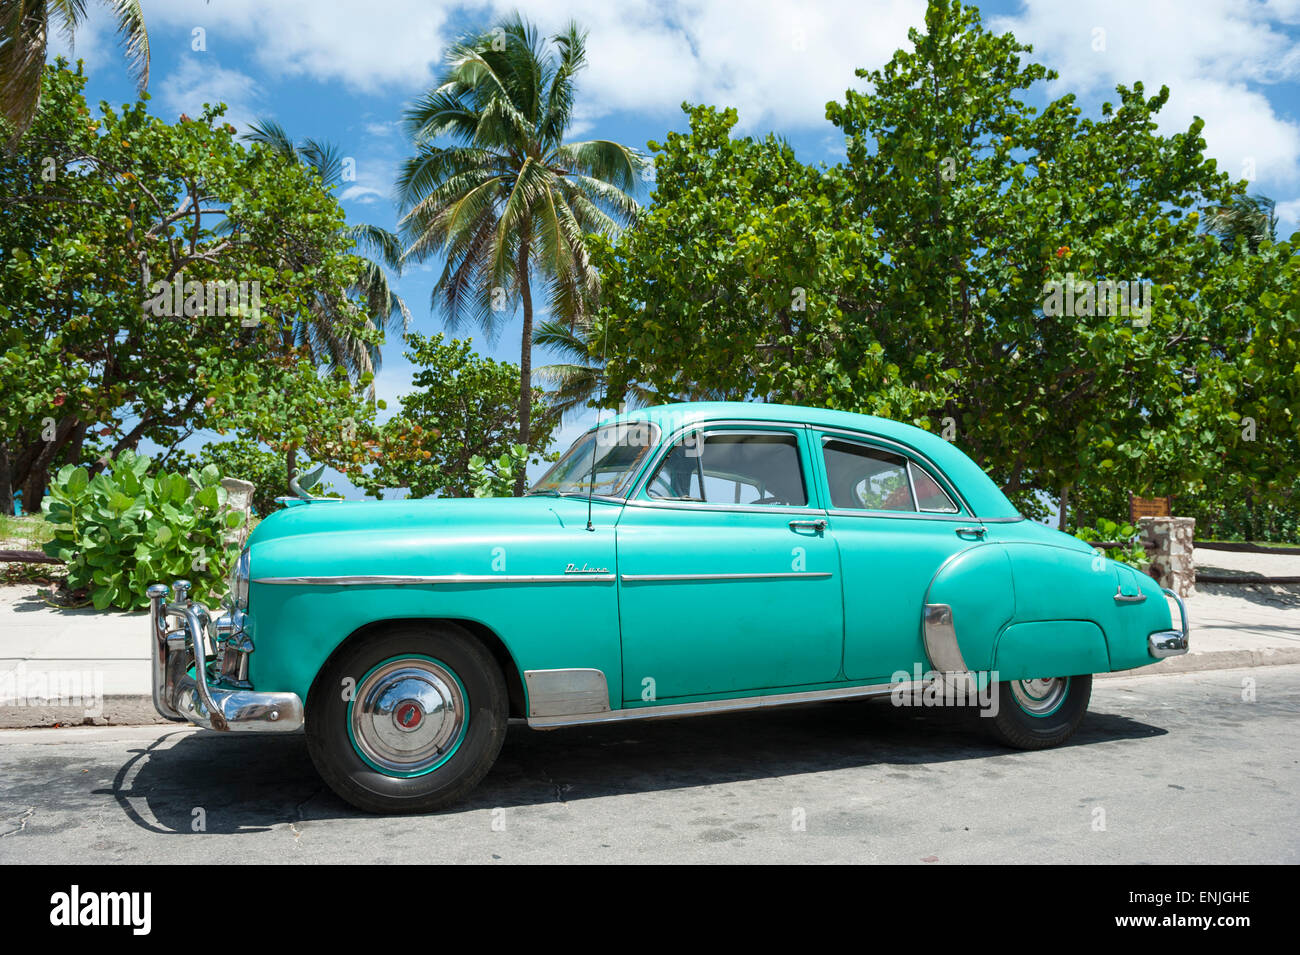 Classic vintage American car in bright tropical turquoise blue with ...